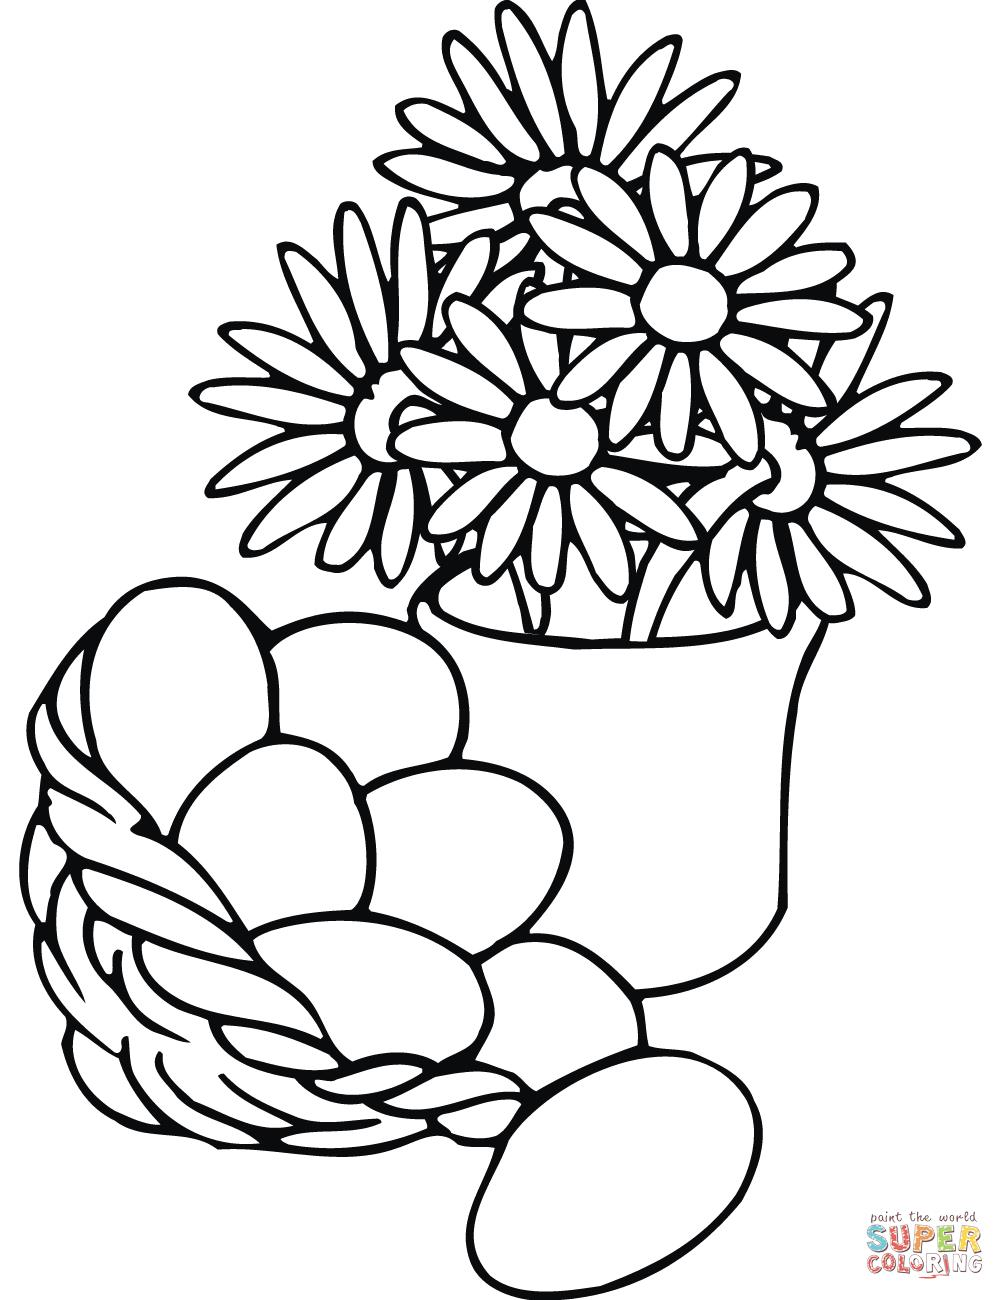 1005x1300 Flowers Coloring Page